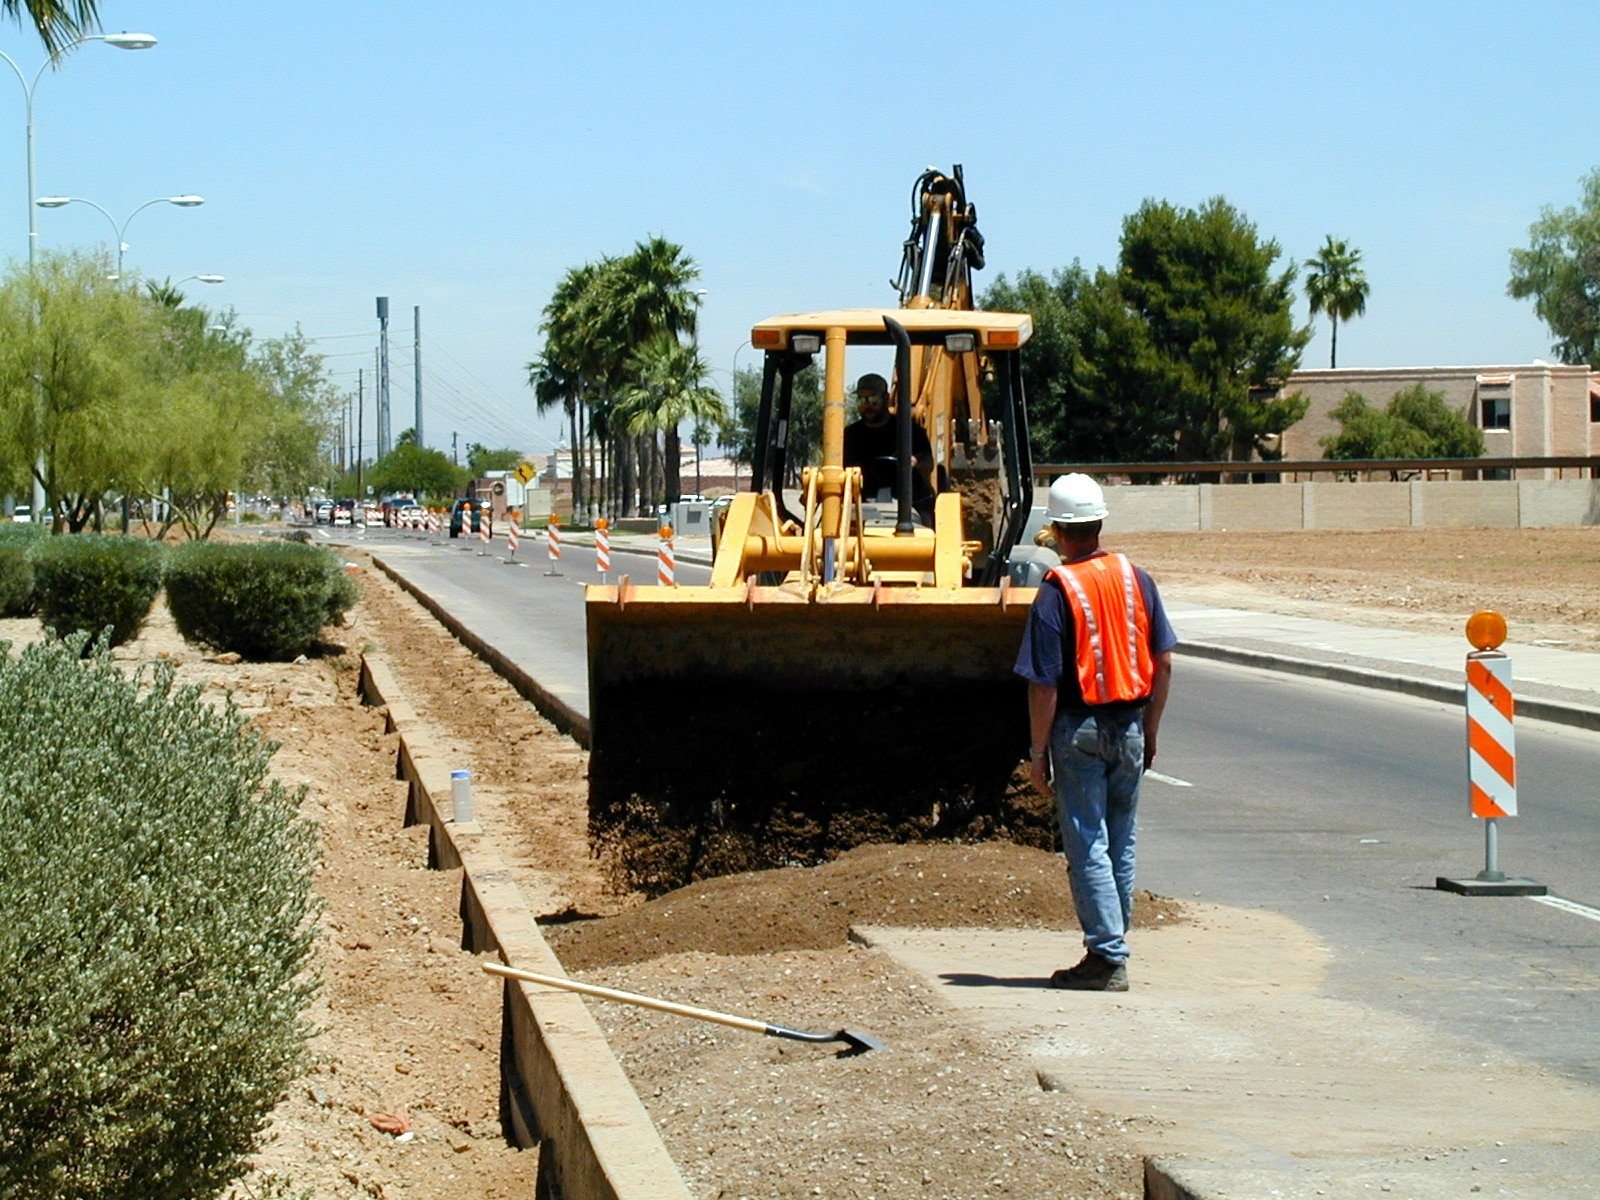 The City of Chandler said drivers speeding through these sections of construction not only puts the workers' lives at risk, but their own as well by possibly hitting barricades, or lifting steel plates that cover deep trenches. (Source: City of Chandler)